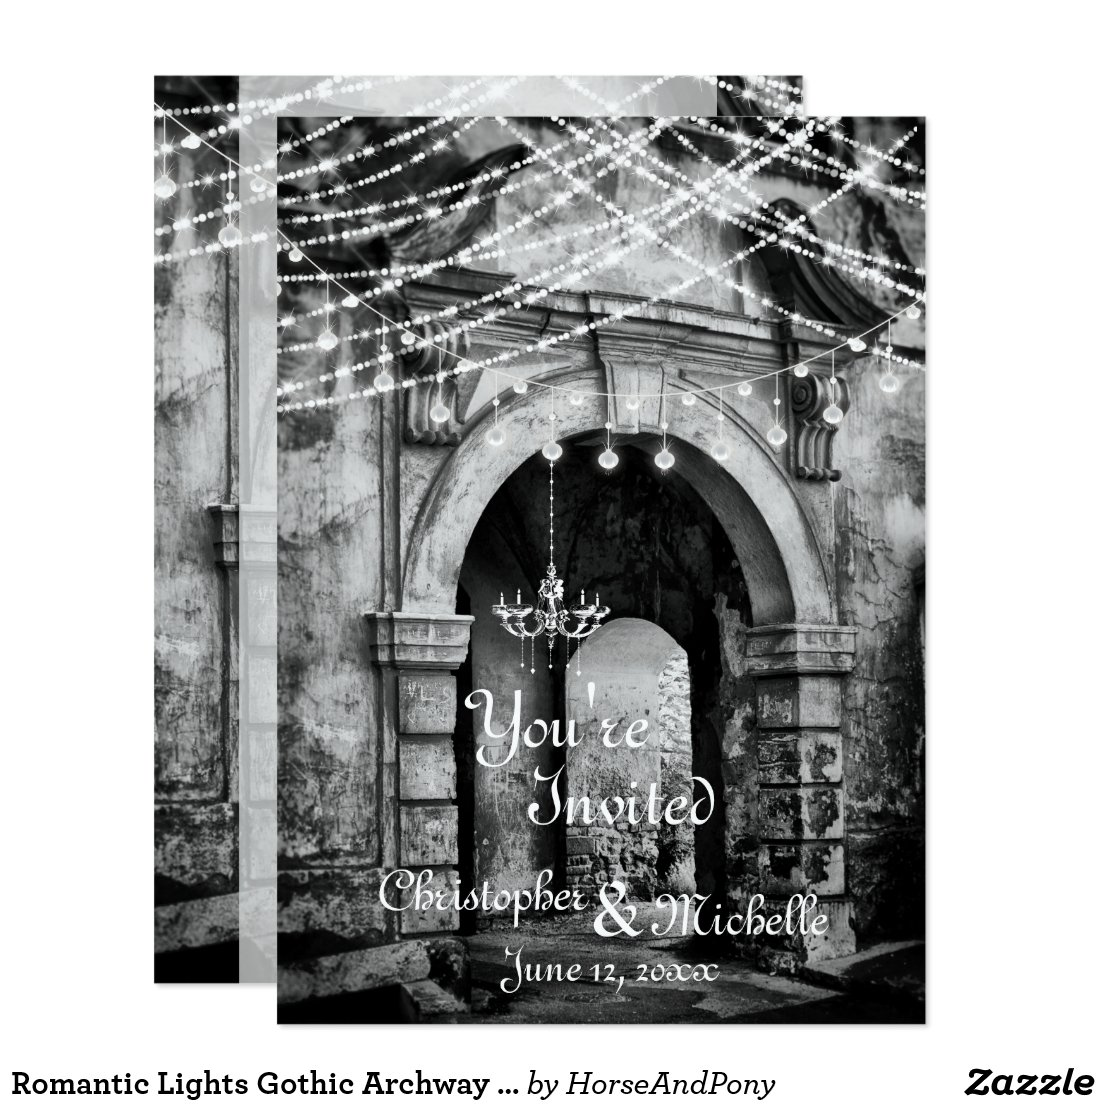 Romantic Lights Gothic Archway Wedding Invitation